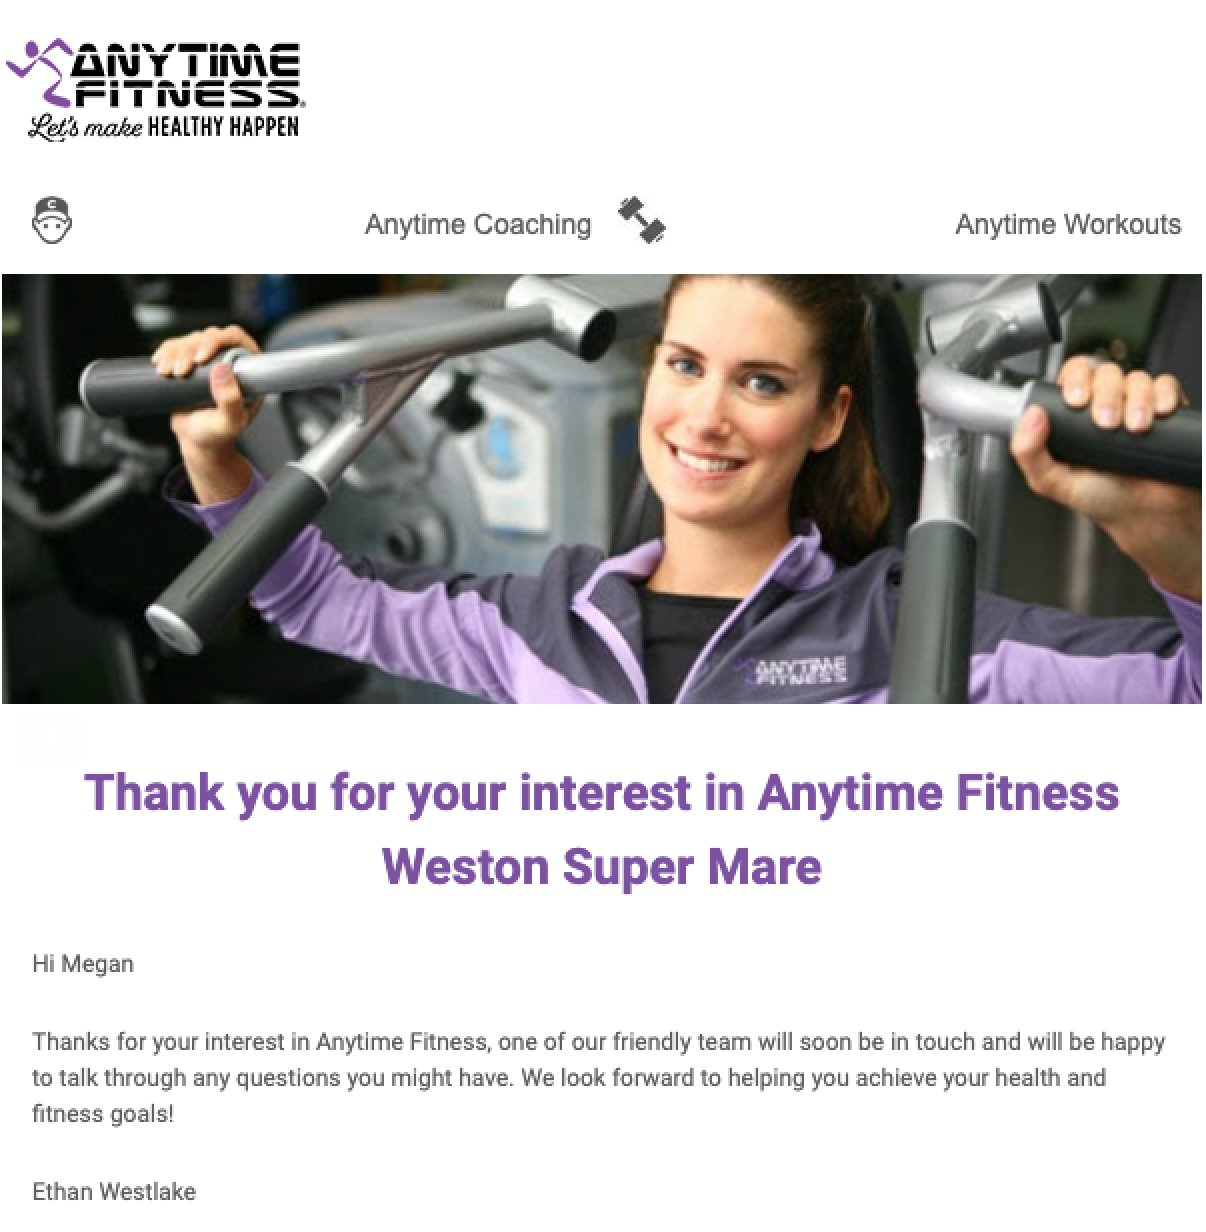 Anytime Fitness newsletter example purple letters